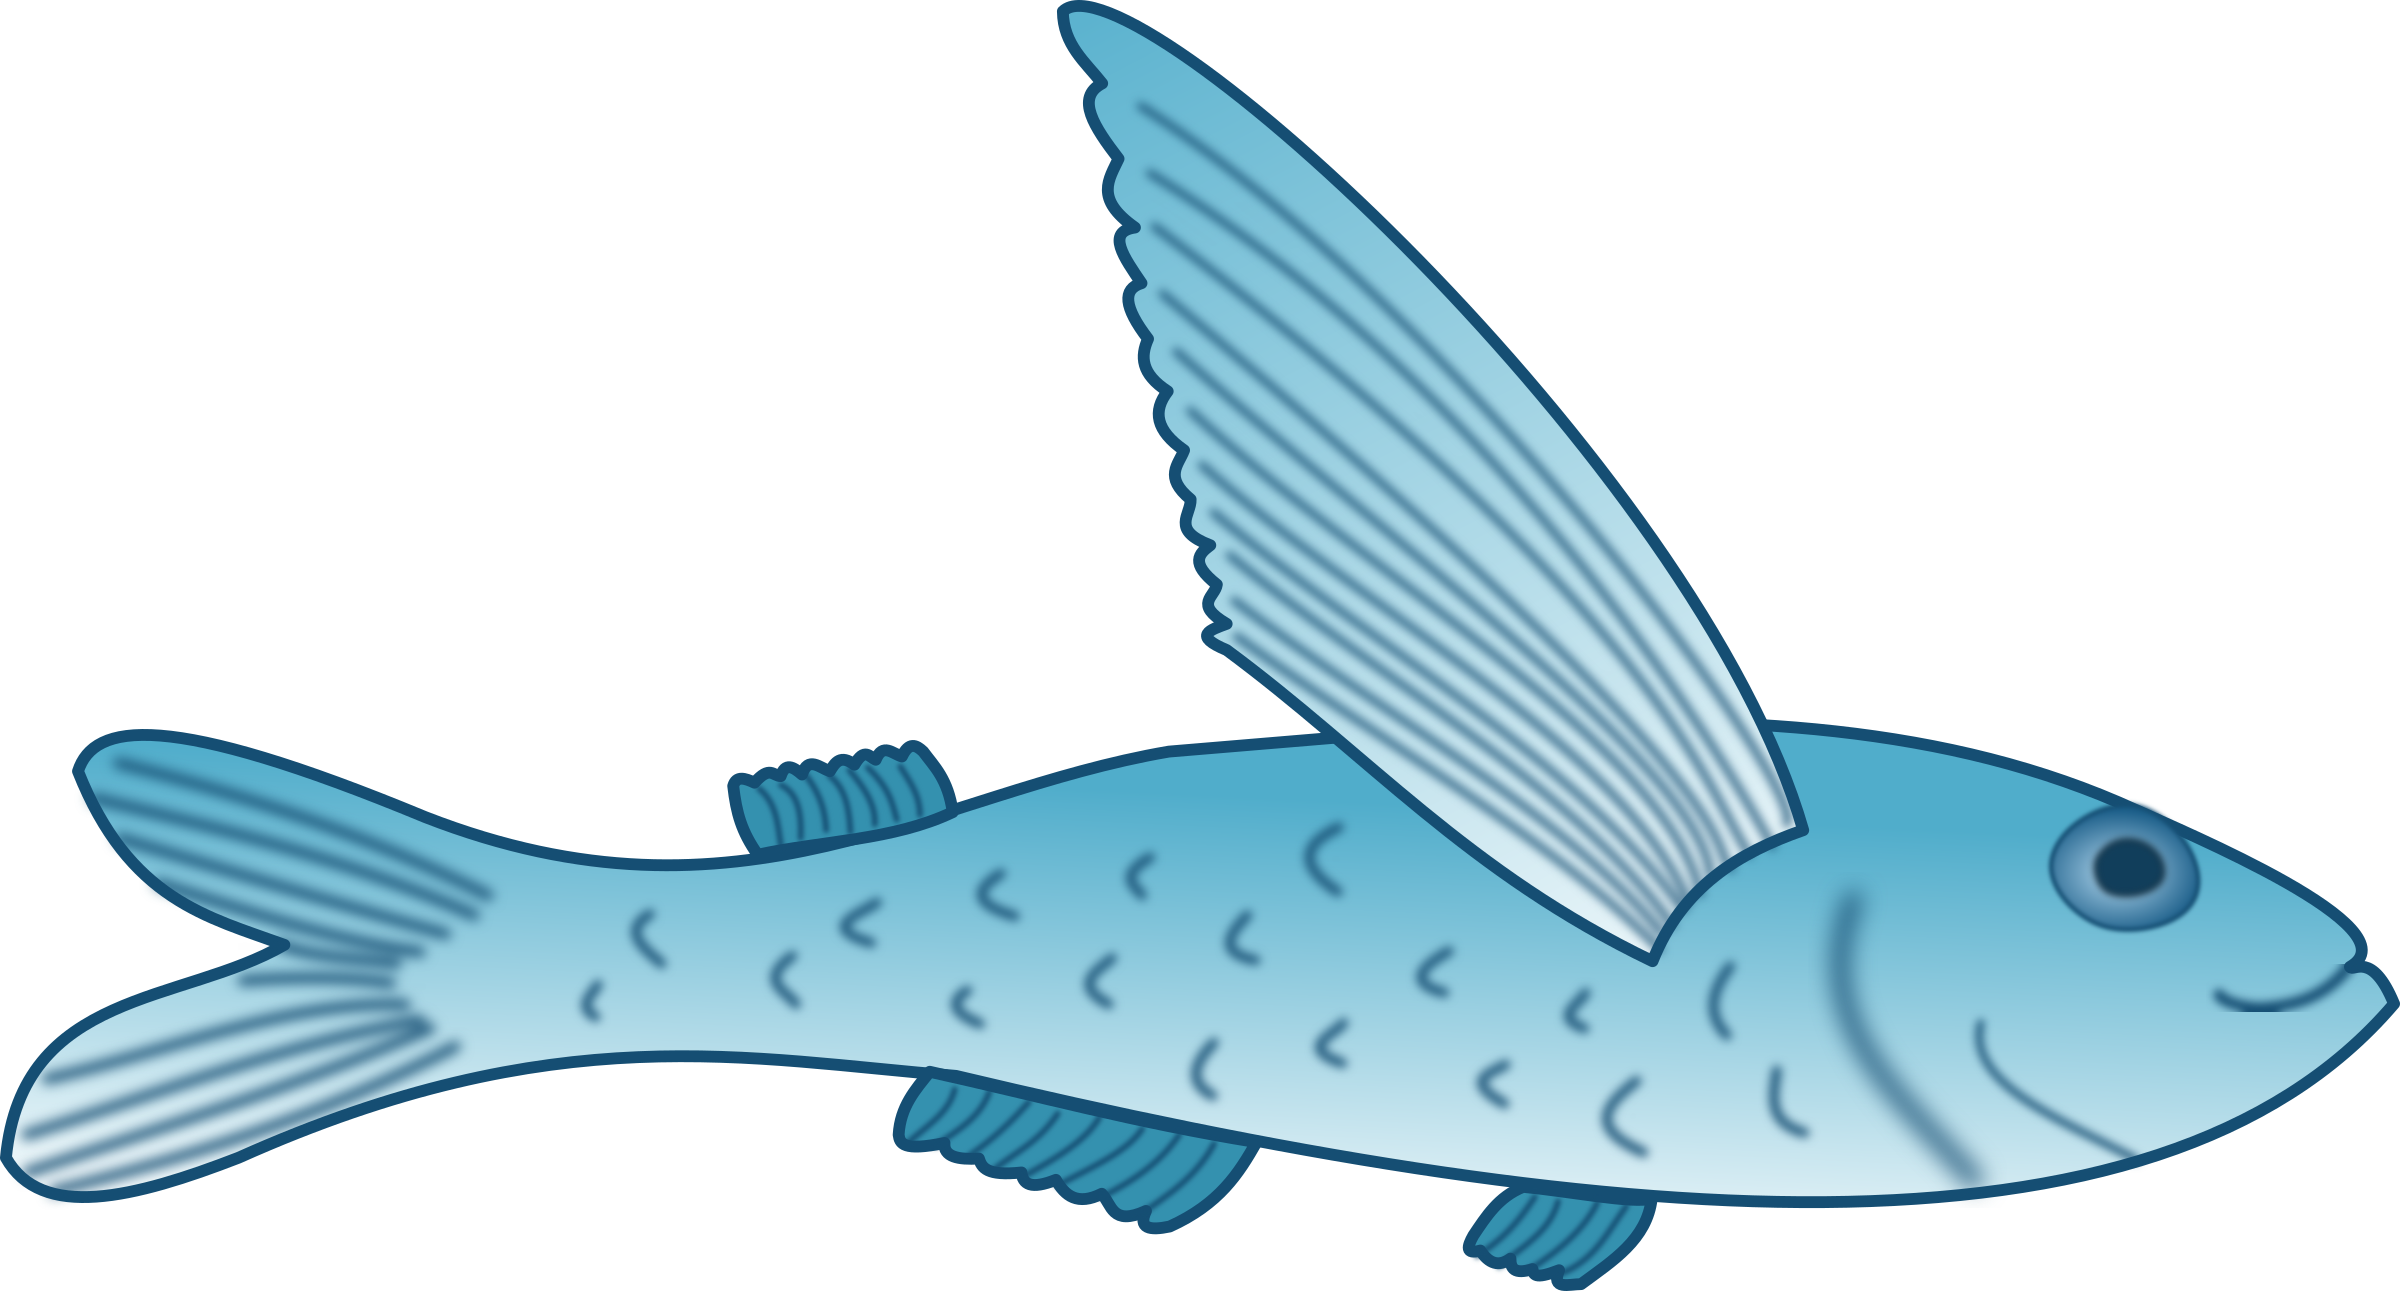 Skeleton bass fish clipart image download Important Clip Art Fish Clipart Flying #32141 image download